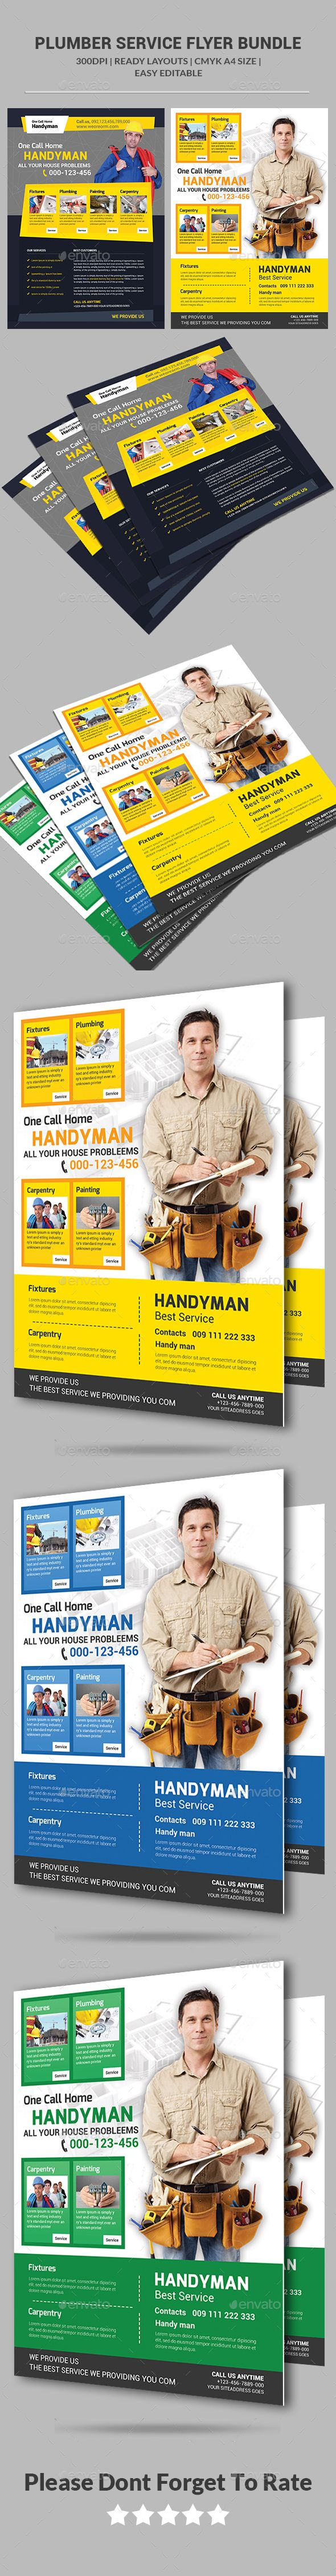 51 best Handyman Services Flyers / Print Templates / PSD images on ...